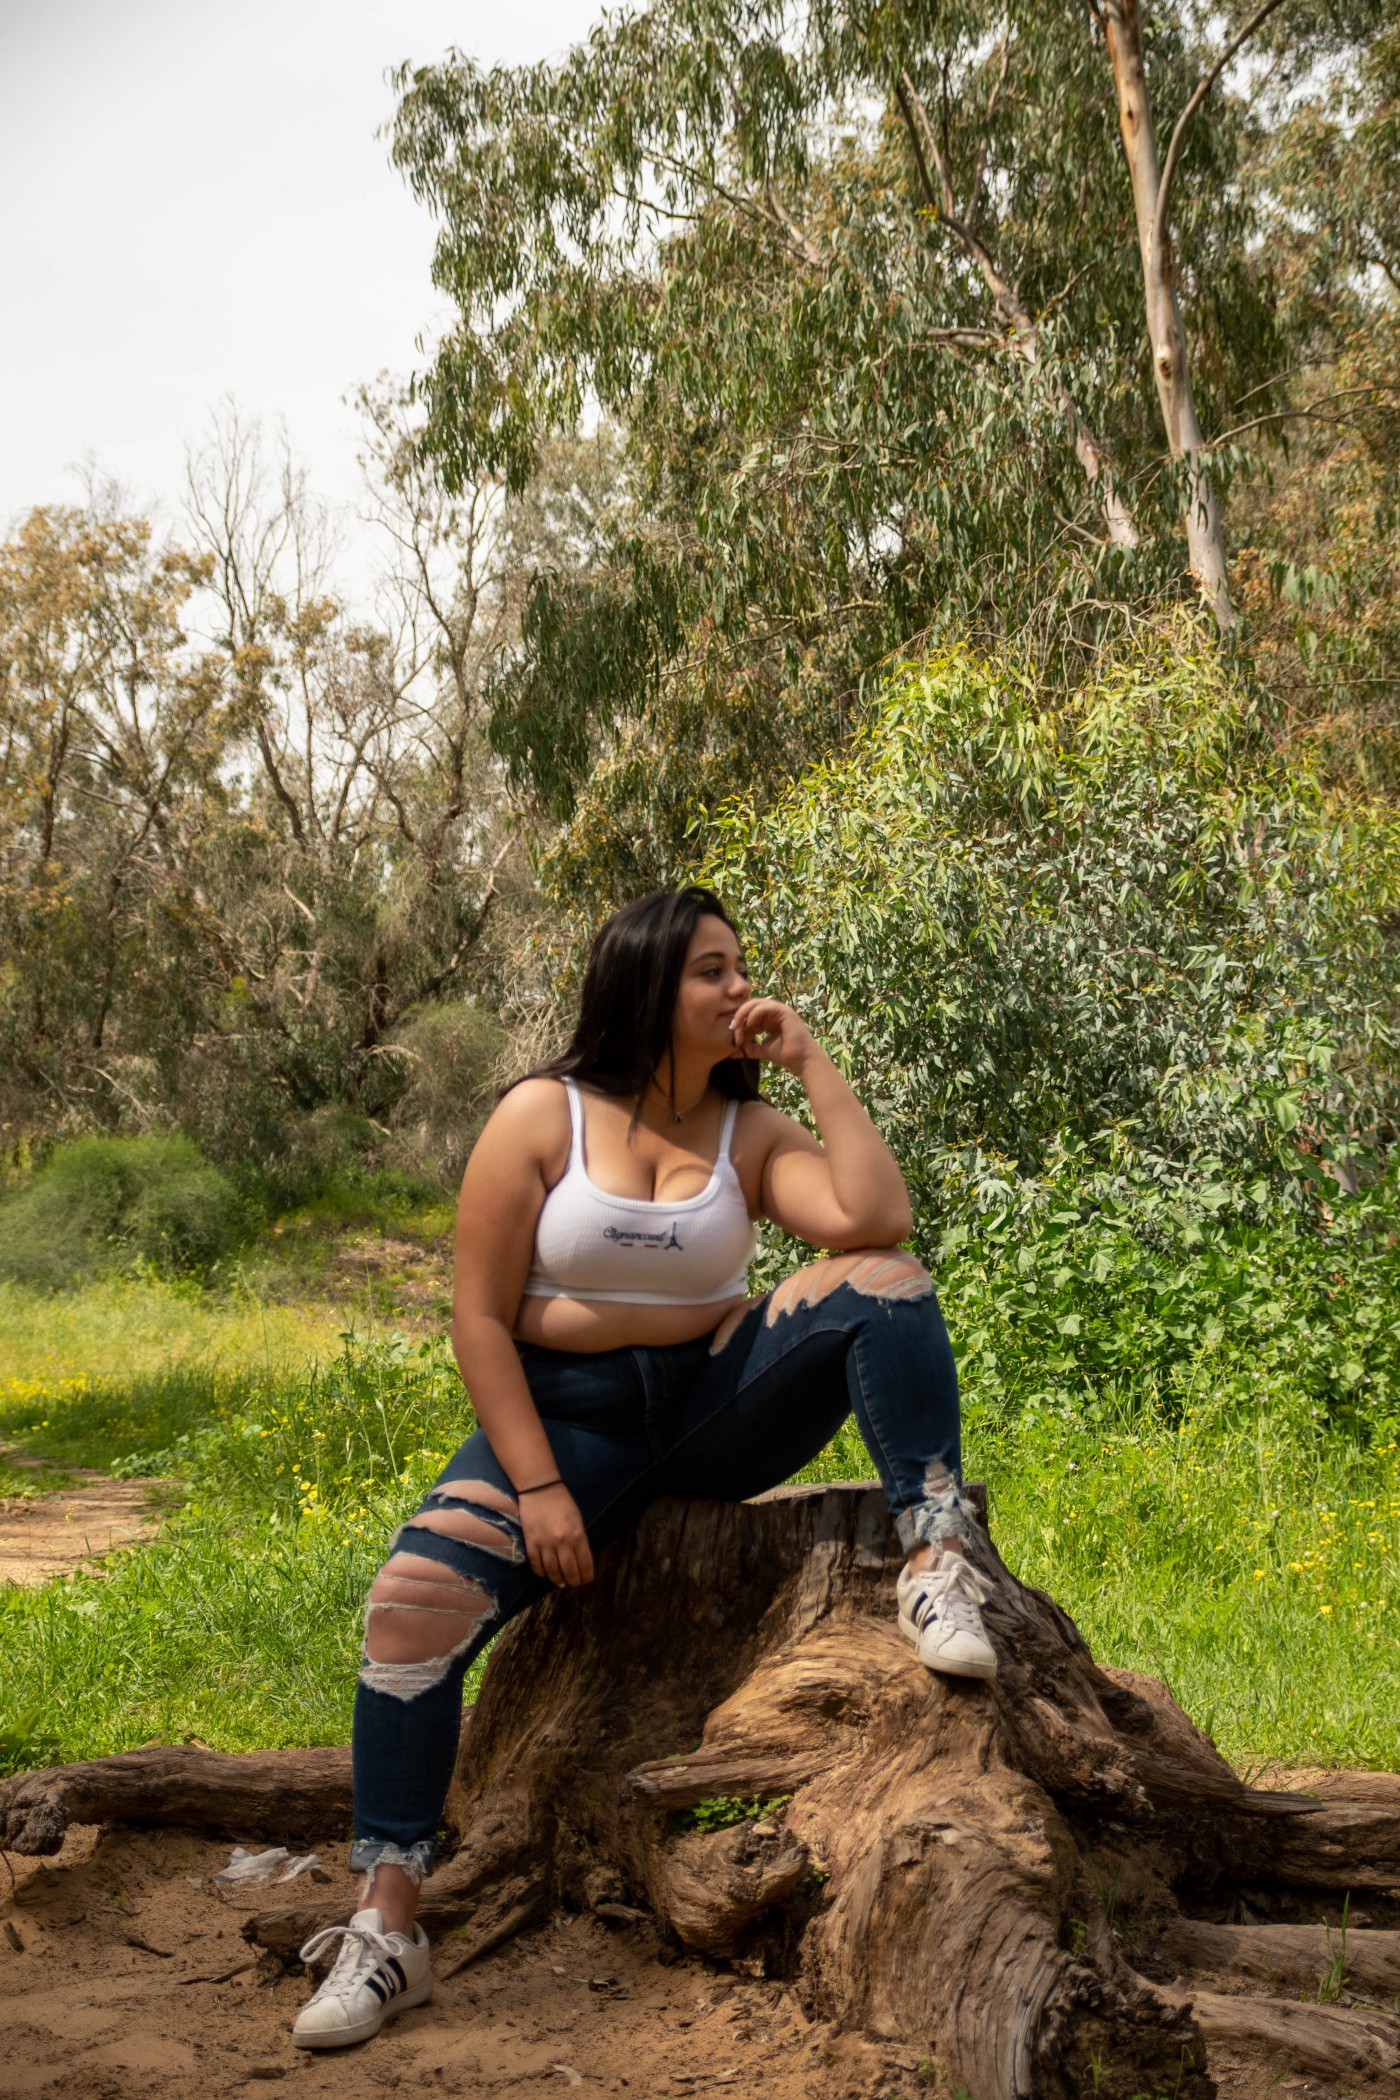 Confident plump girl wearing ripped jeans and crop top sits amongst trees.